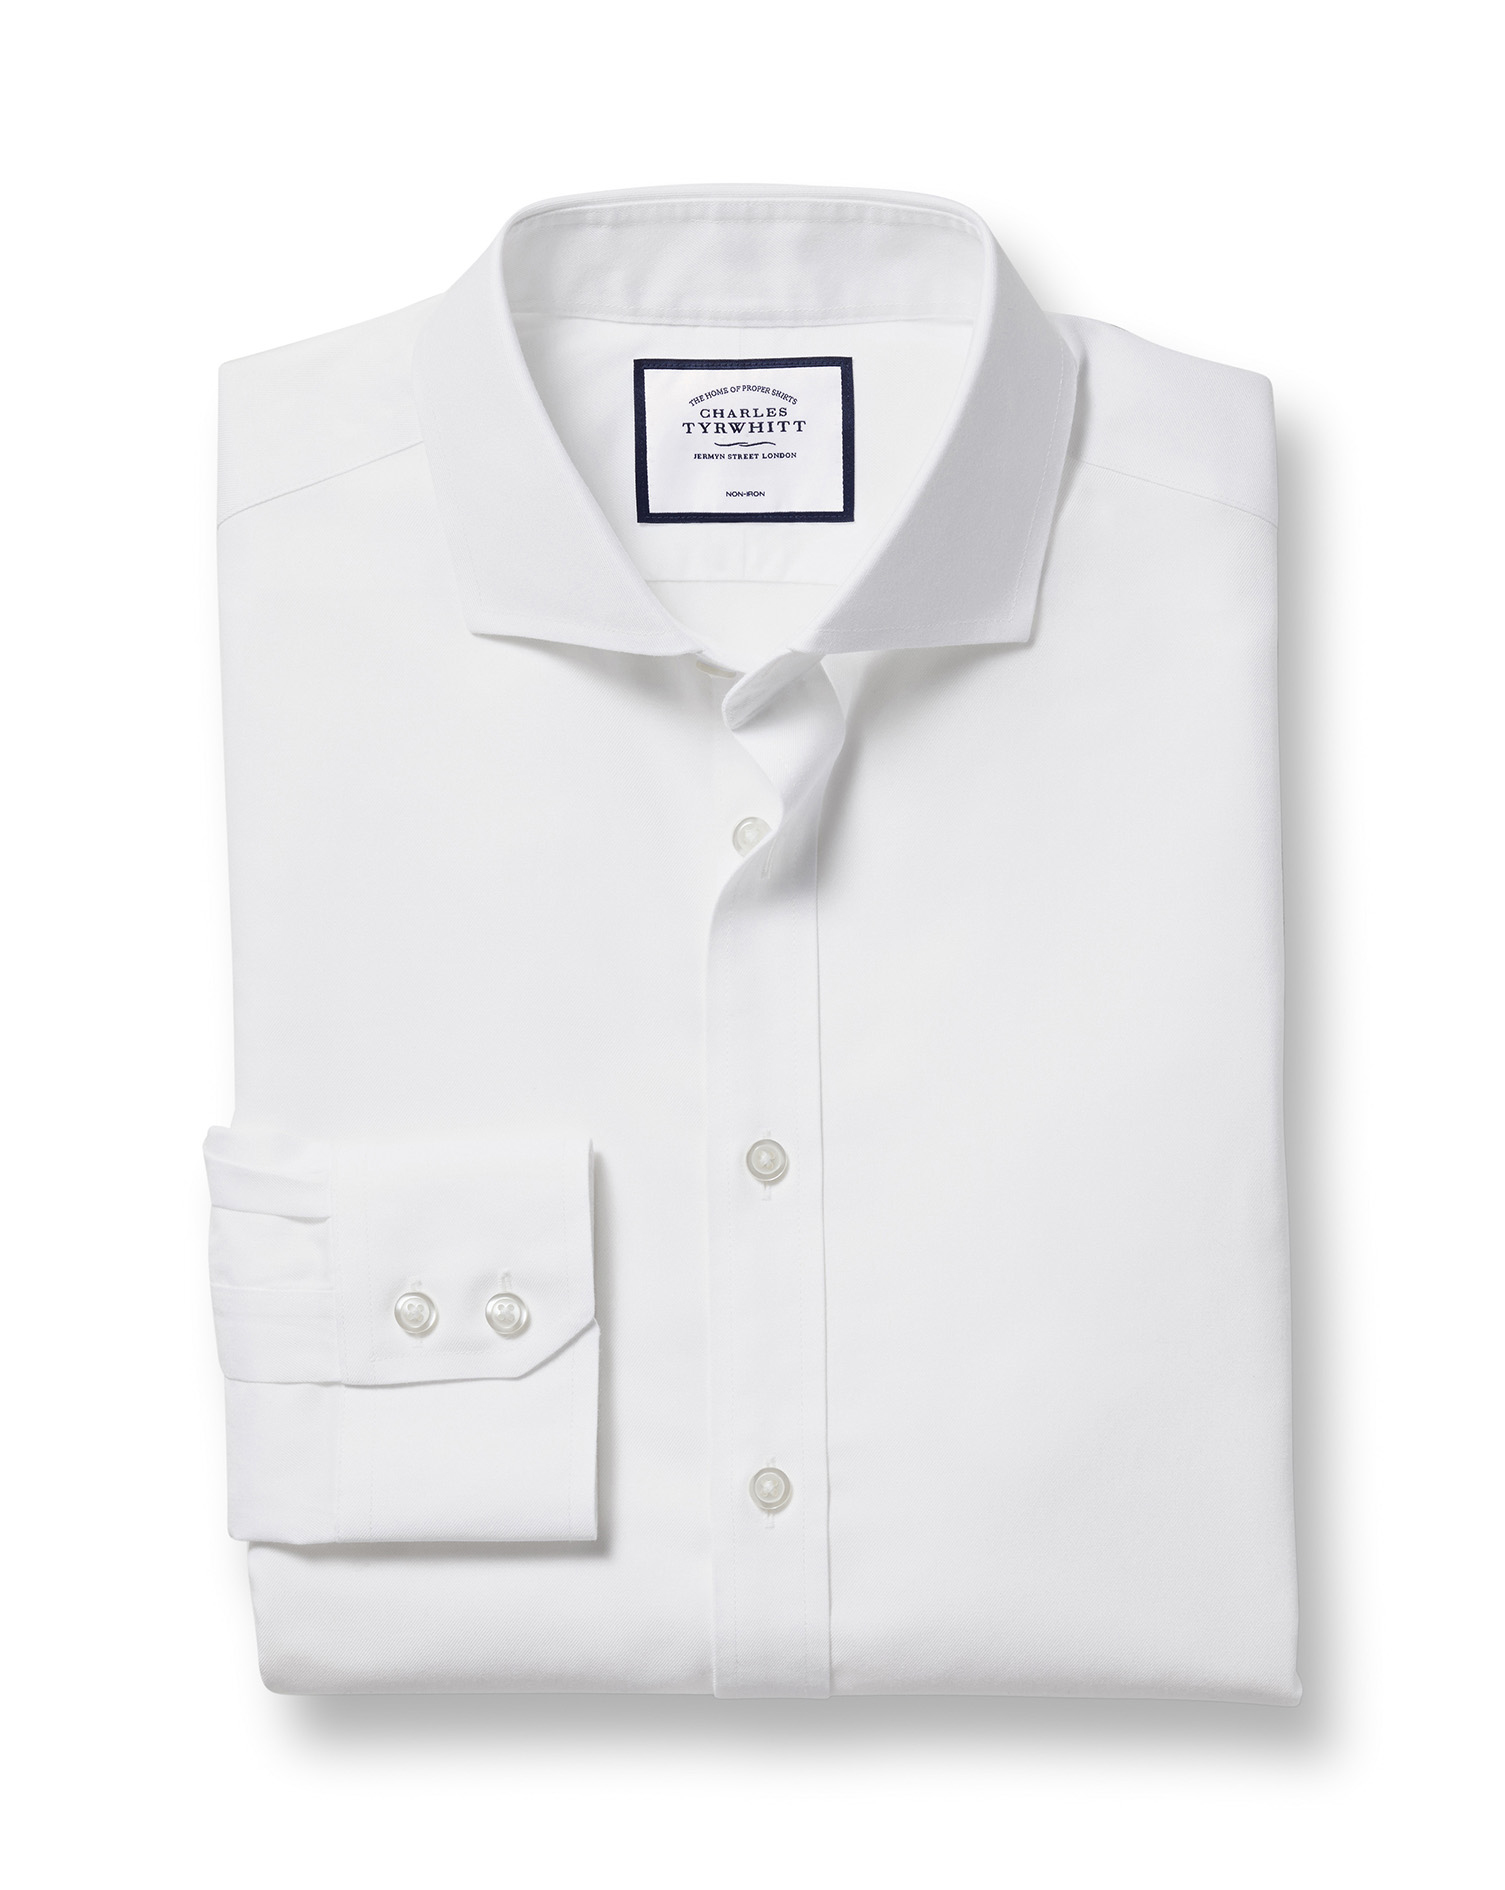 Slim Fit Extreme Cutaway Non-Iron Twill White Cotton Formal Shirt Single Cuff Size 15.5/34 by Charles Tyrwhitt from Charles Tyrwhitt